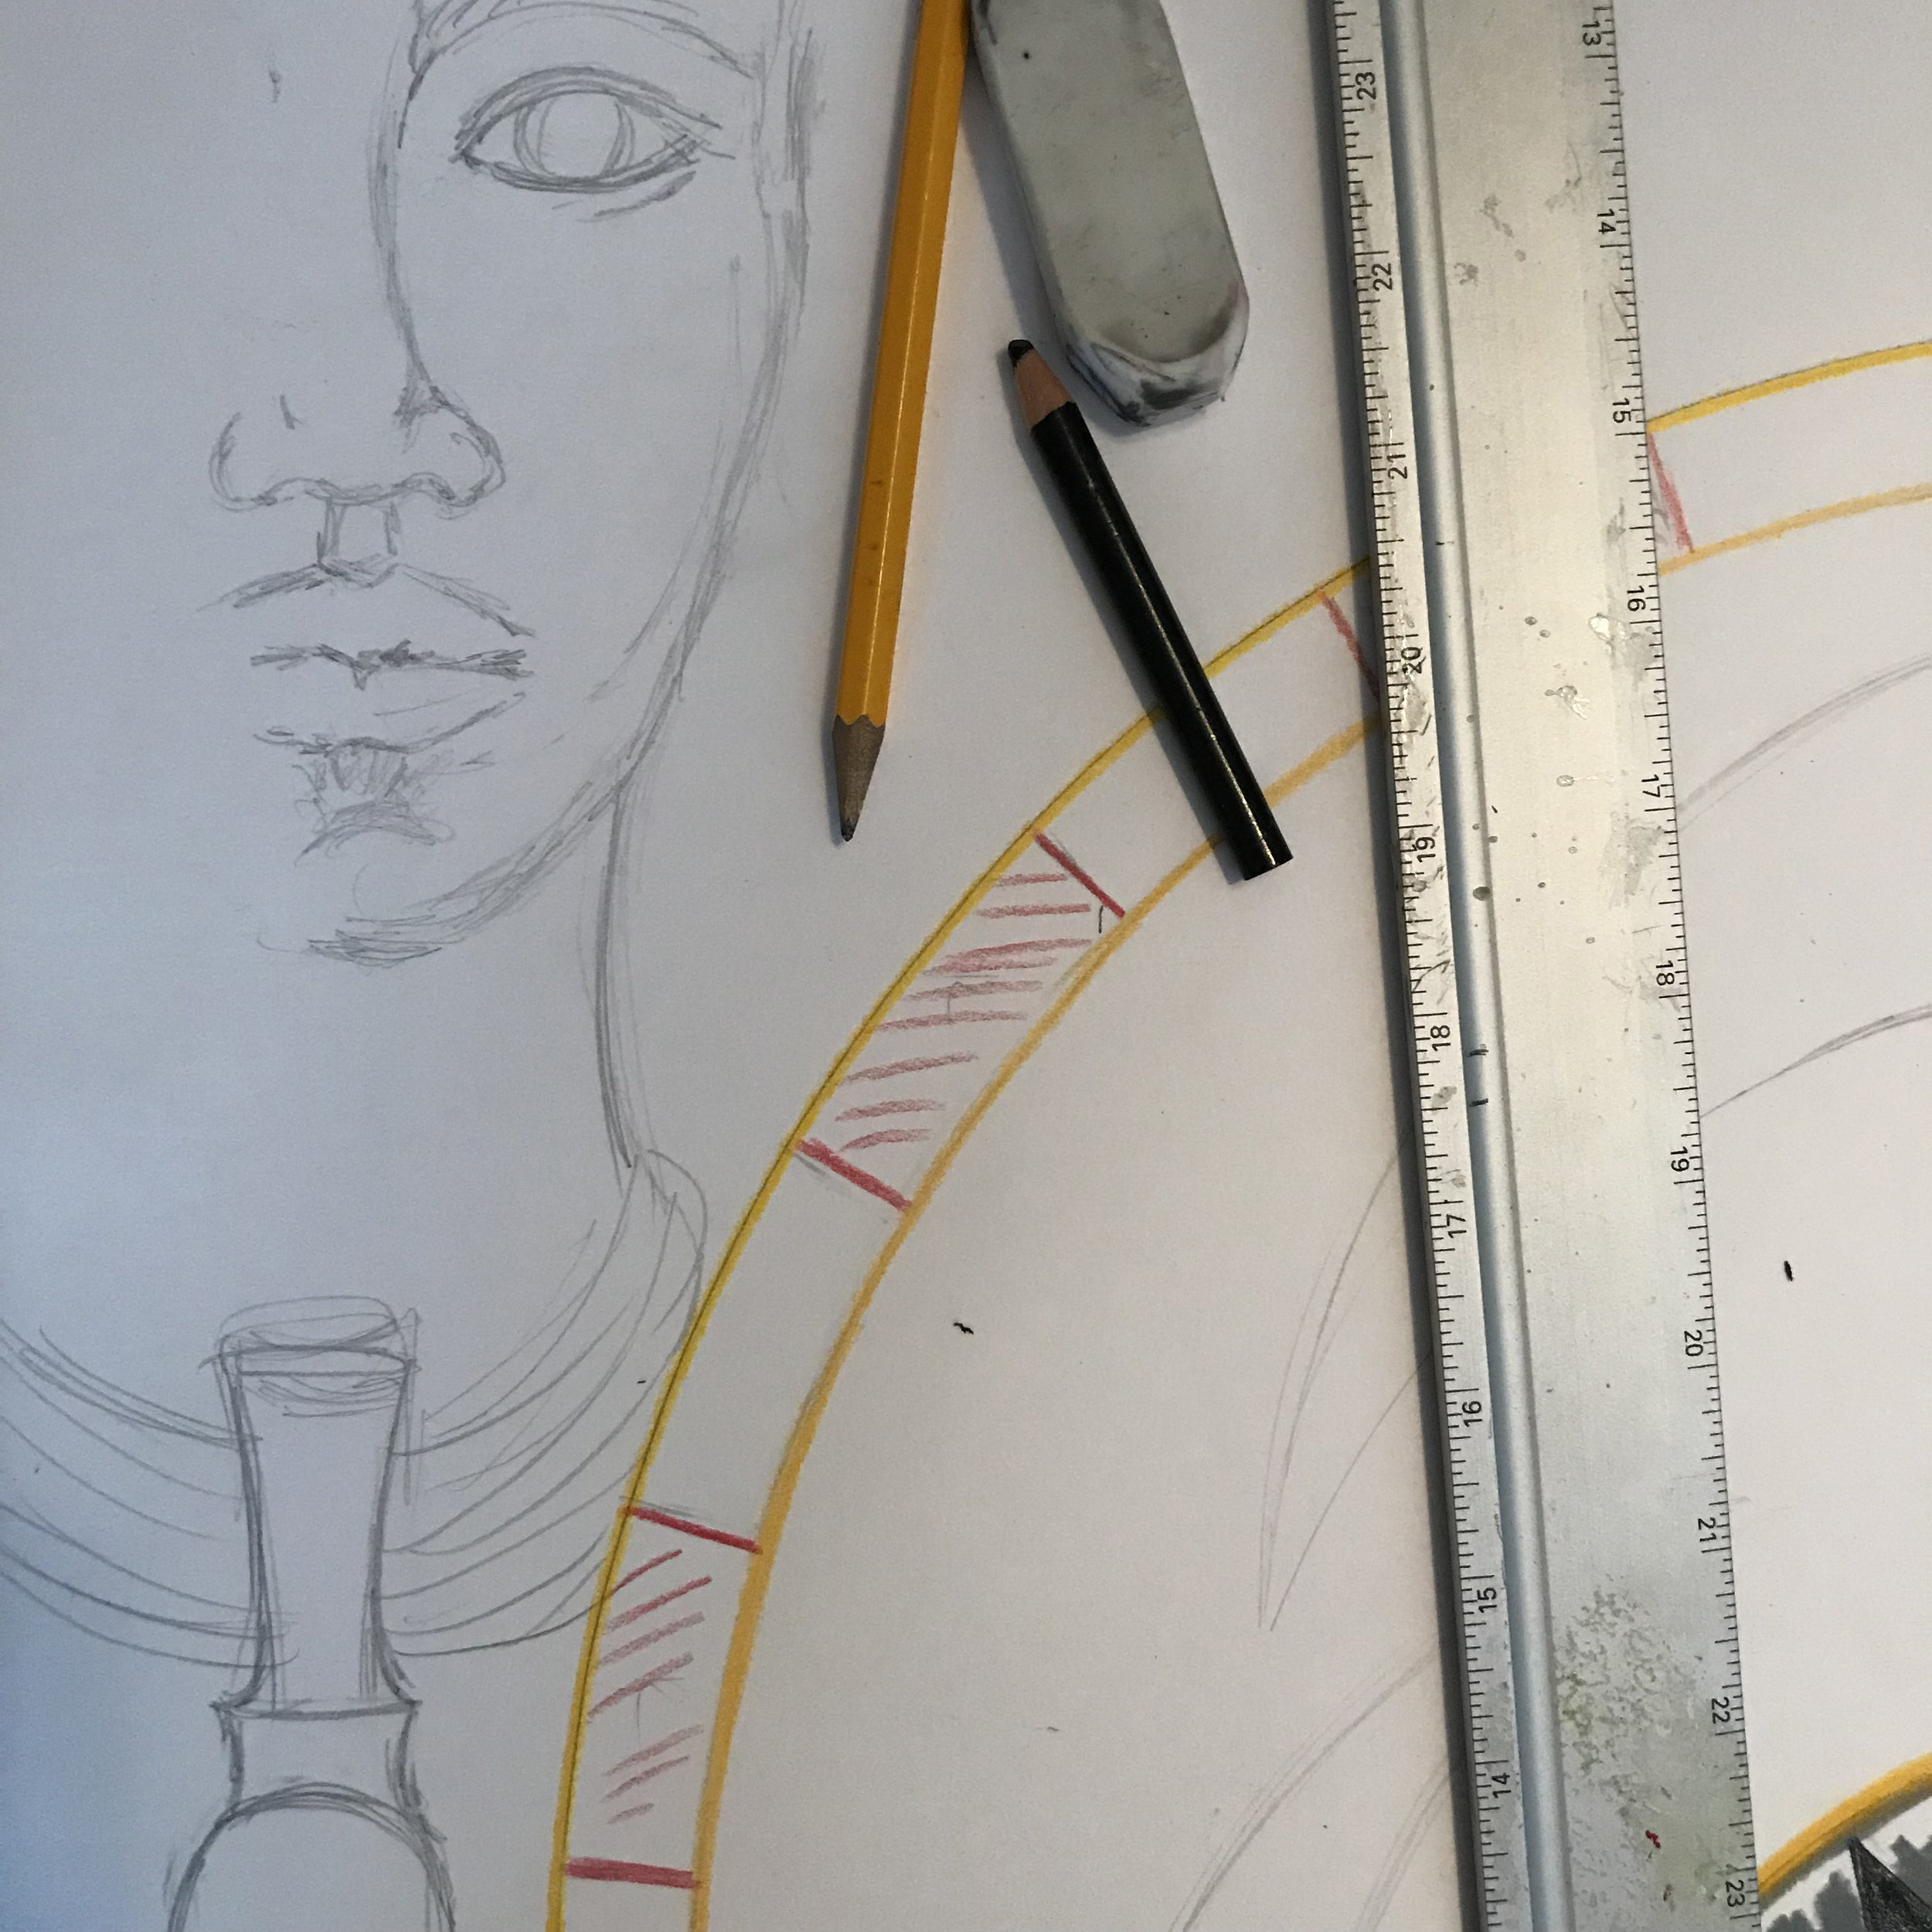 The beginnings of the mural outline starting with the face of a young Kaʻahumanu.